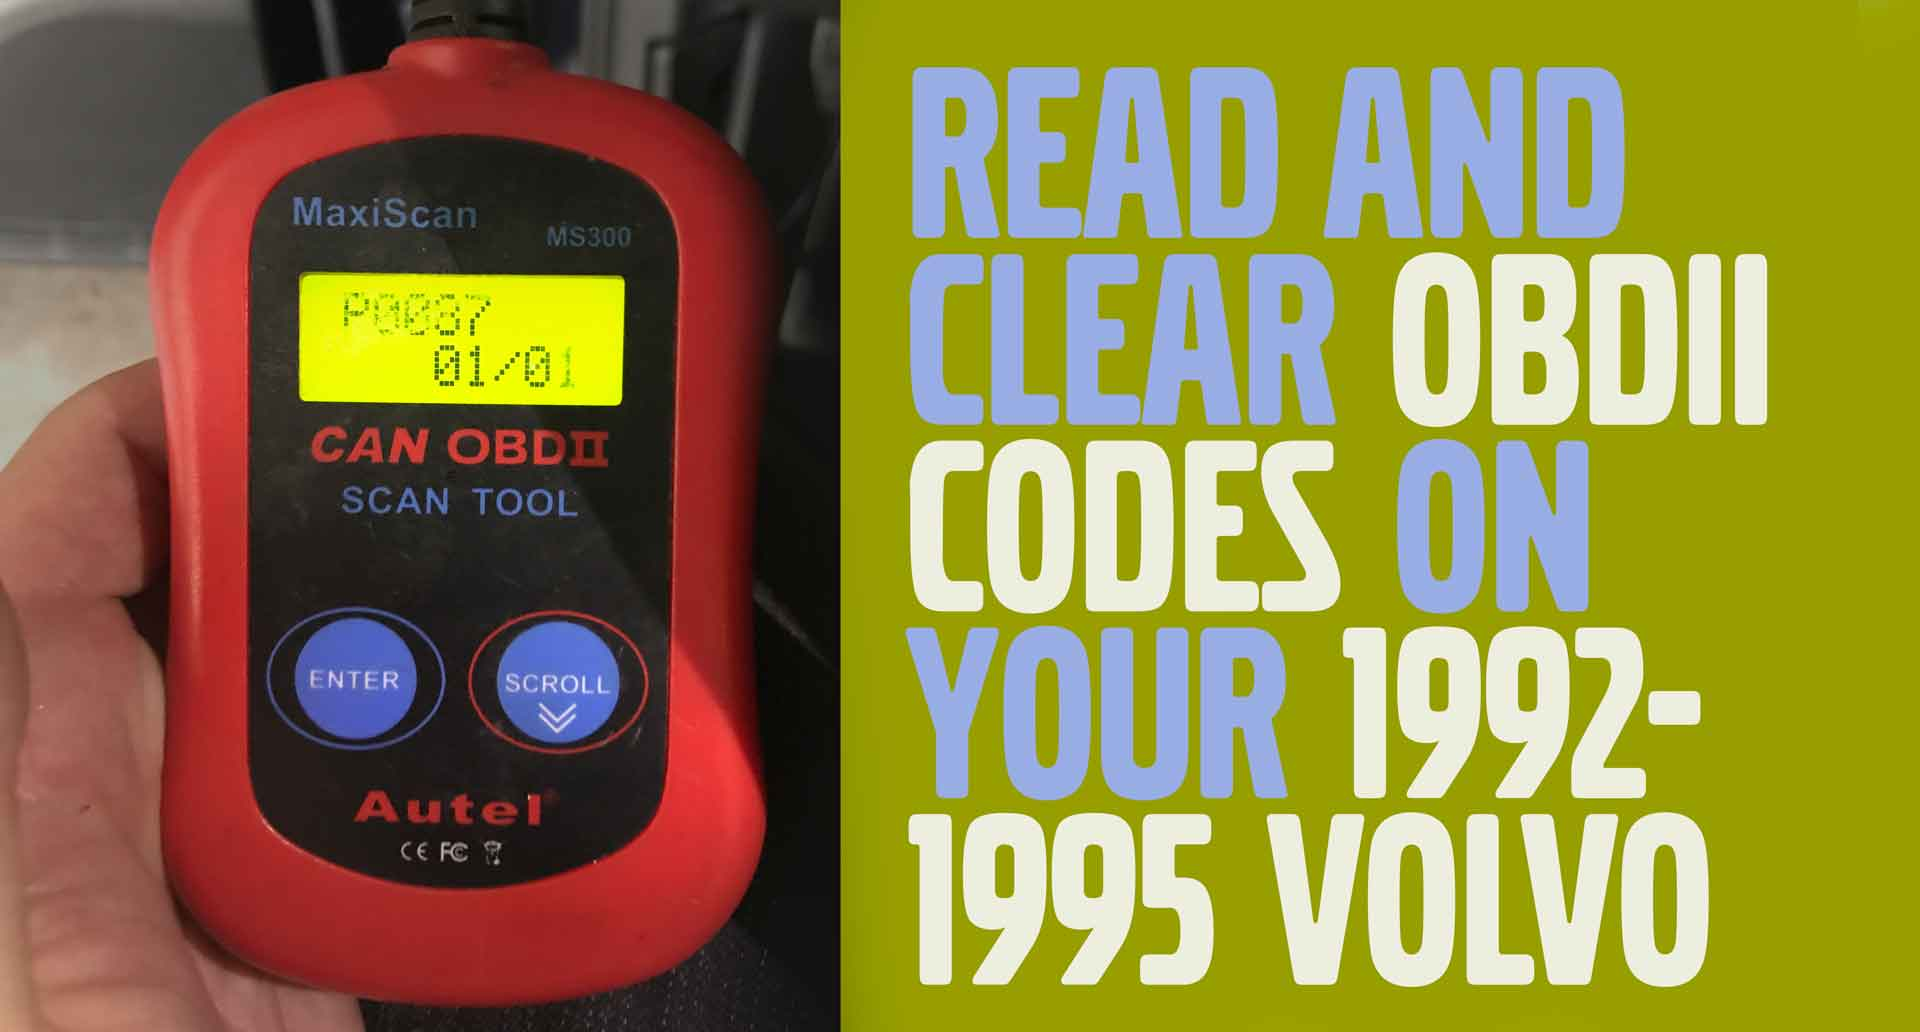 hight resolution of obdii and diagnostic codes 1992 1995 volvos